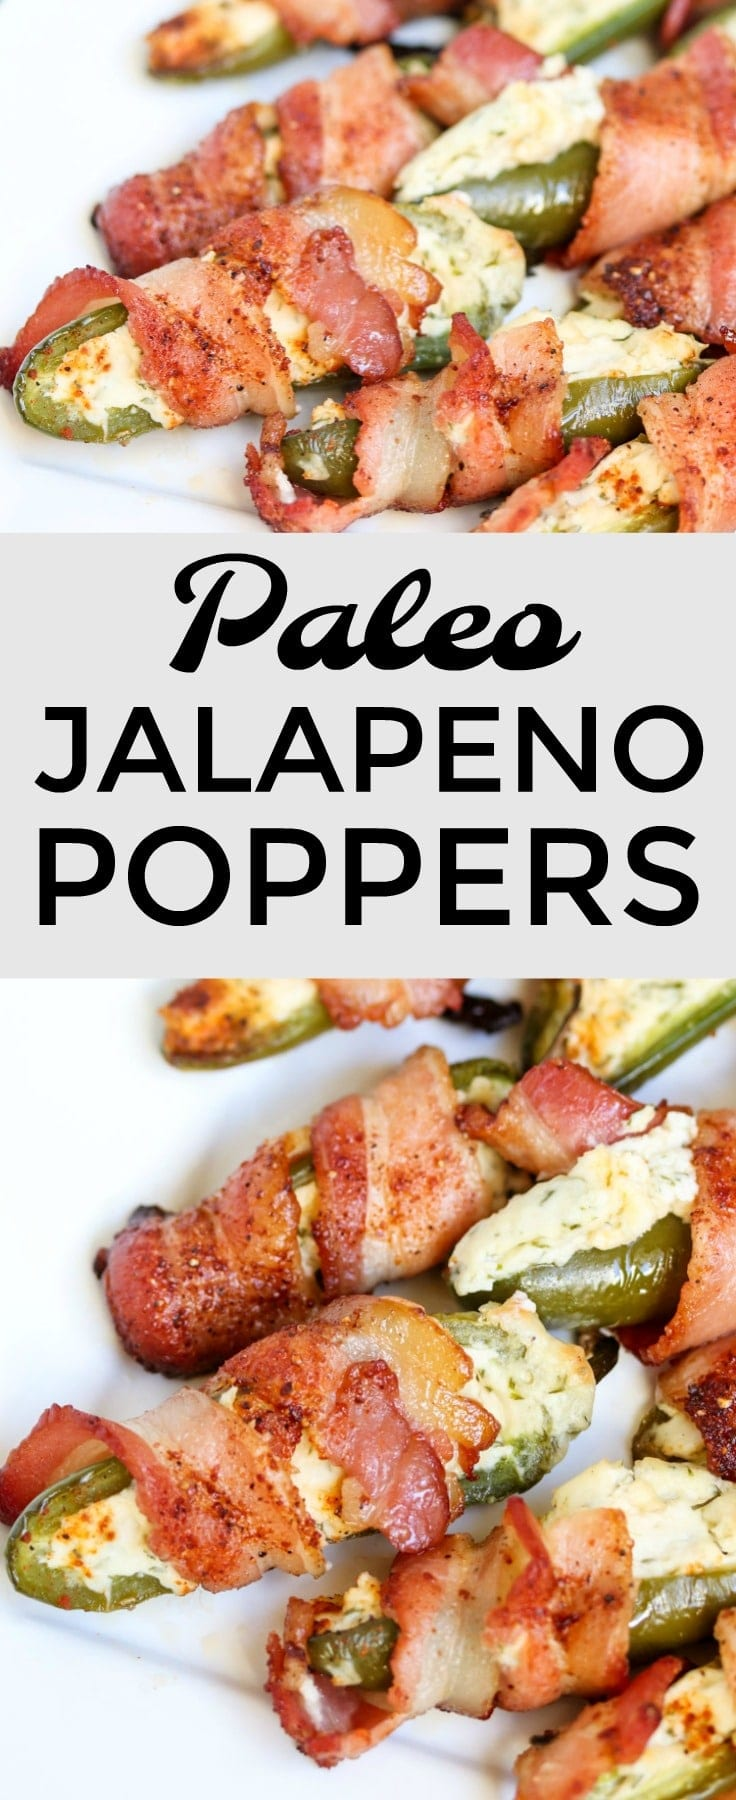 These #paleo jalapeno poppers are stuffed with a mixture of Kite Hill almond cream cheese, Primal Kitchen mayo, wrapped with sugar free bacon and sprinkled with sugar free BBQ rub. A perfect #appetizer for parties and a tasty side dish to pair with a juicy steak or chicken breast. Grill or bake! #keto #partyfood #glutenfree #bacon